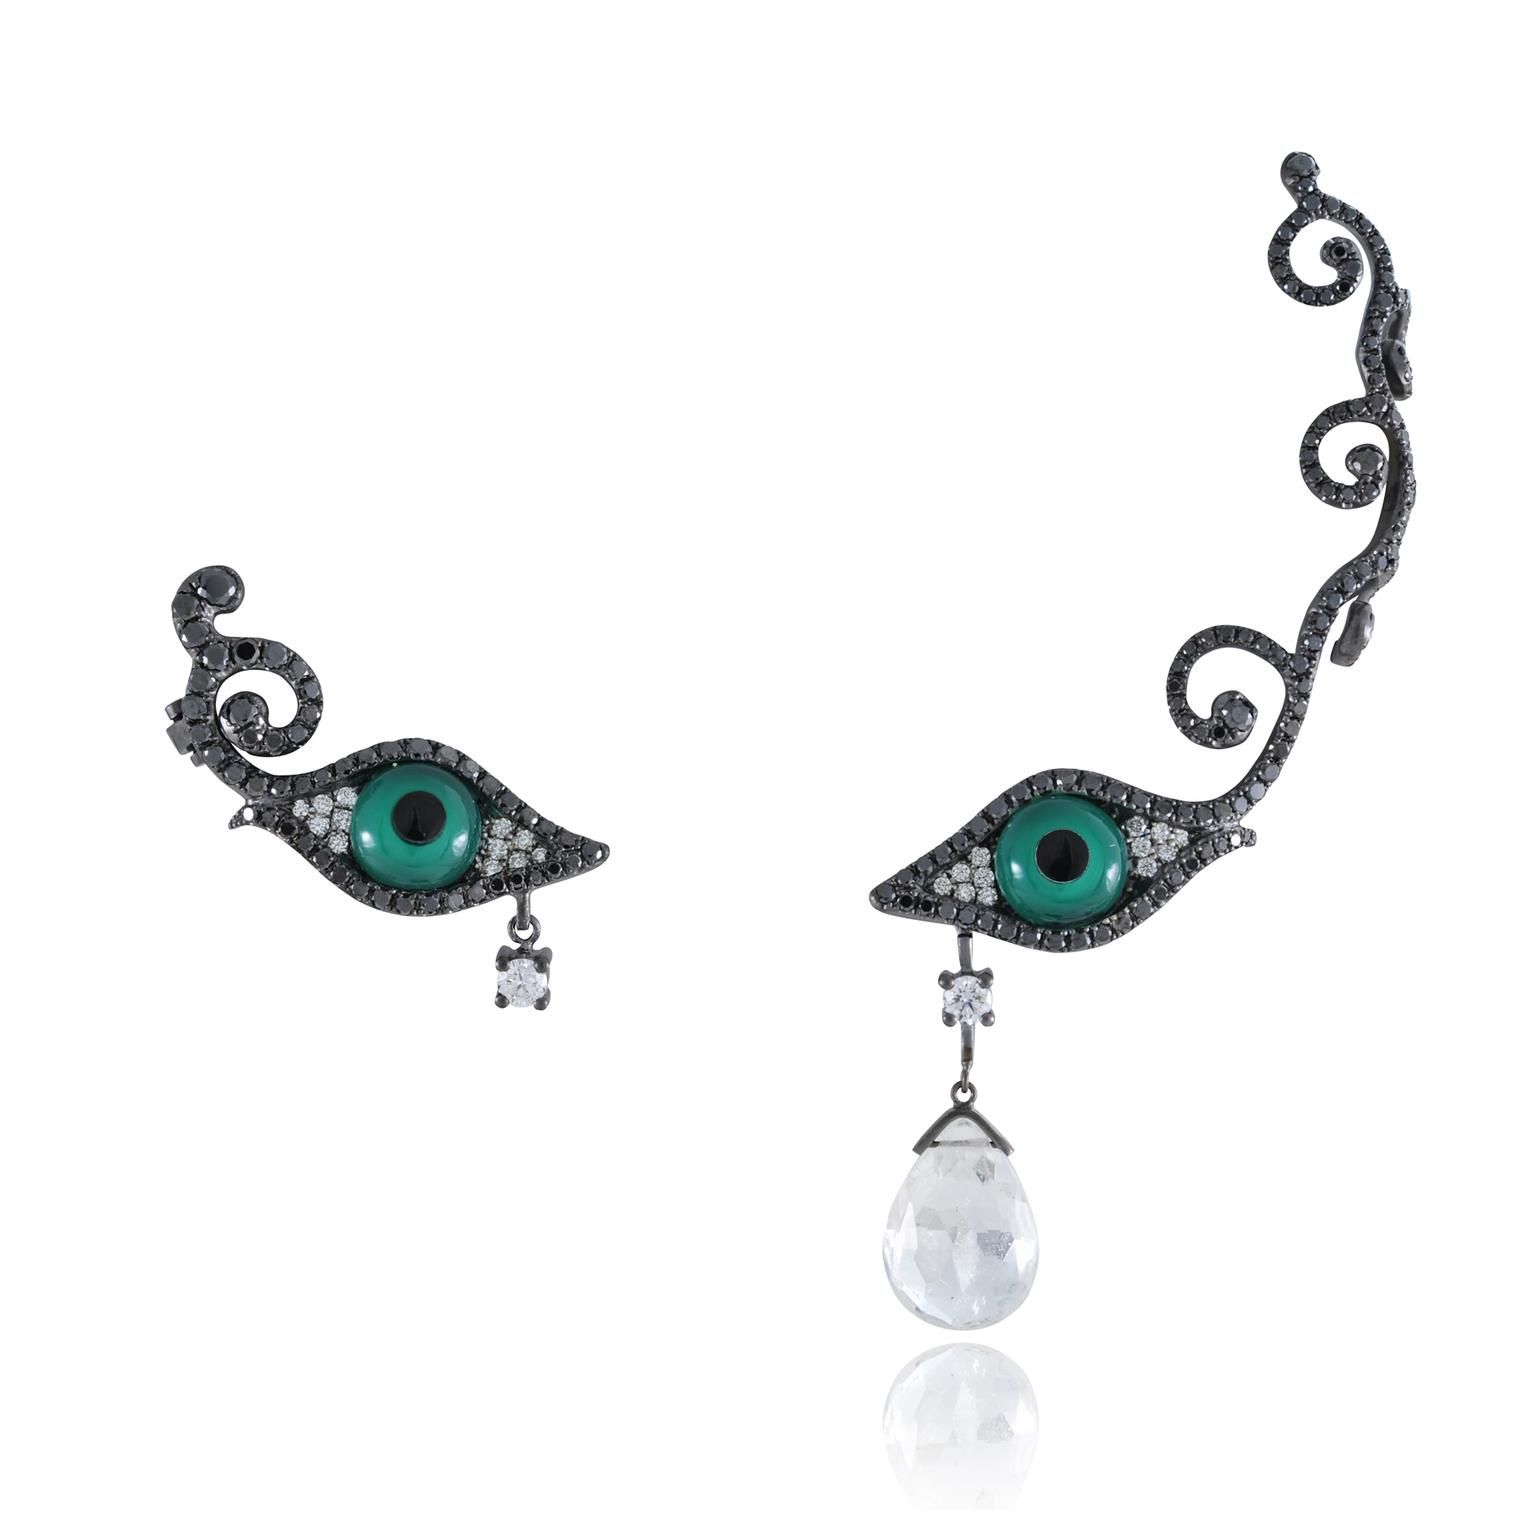 Lydia Courteille Harem Eyes ear cuffs